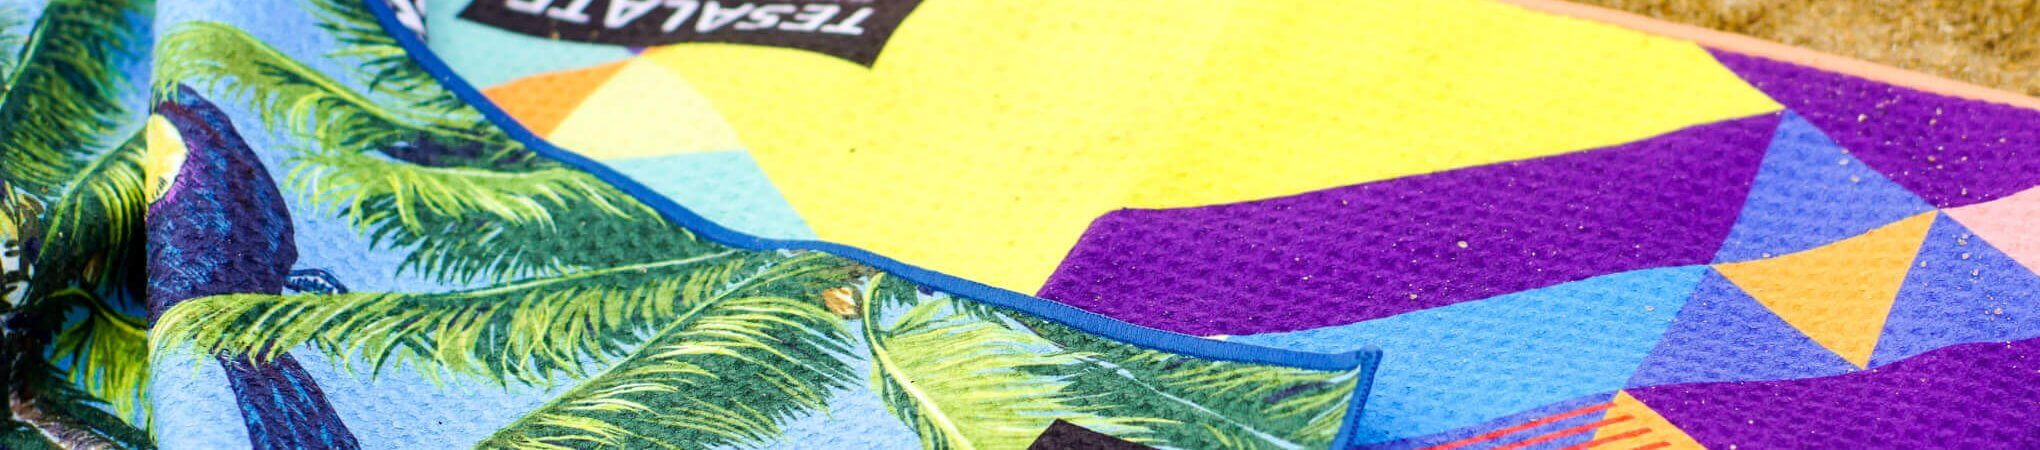 HOT: Tesalate Towels – Sand Free Beach Towels Review